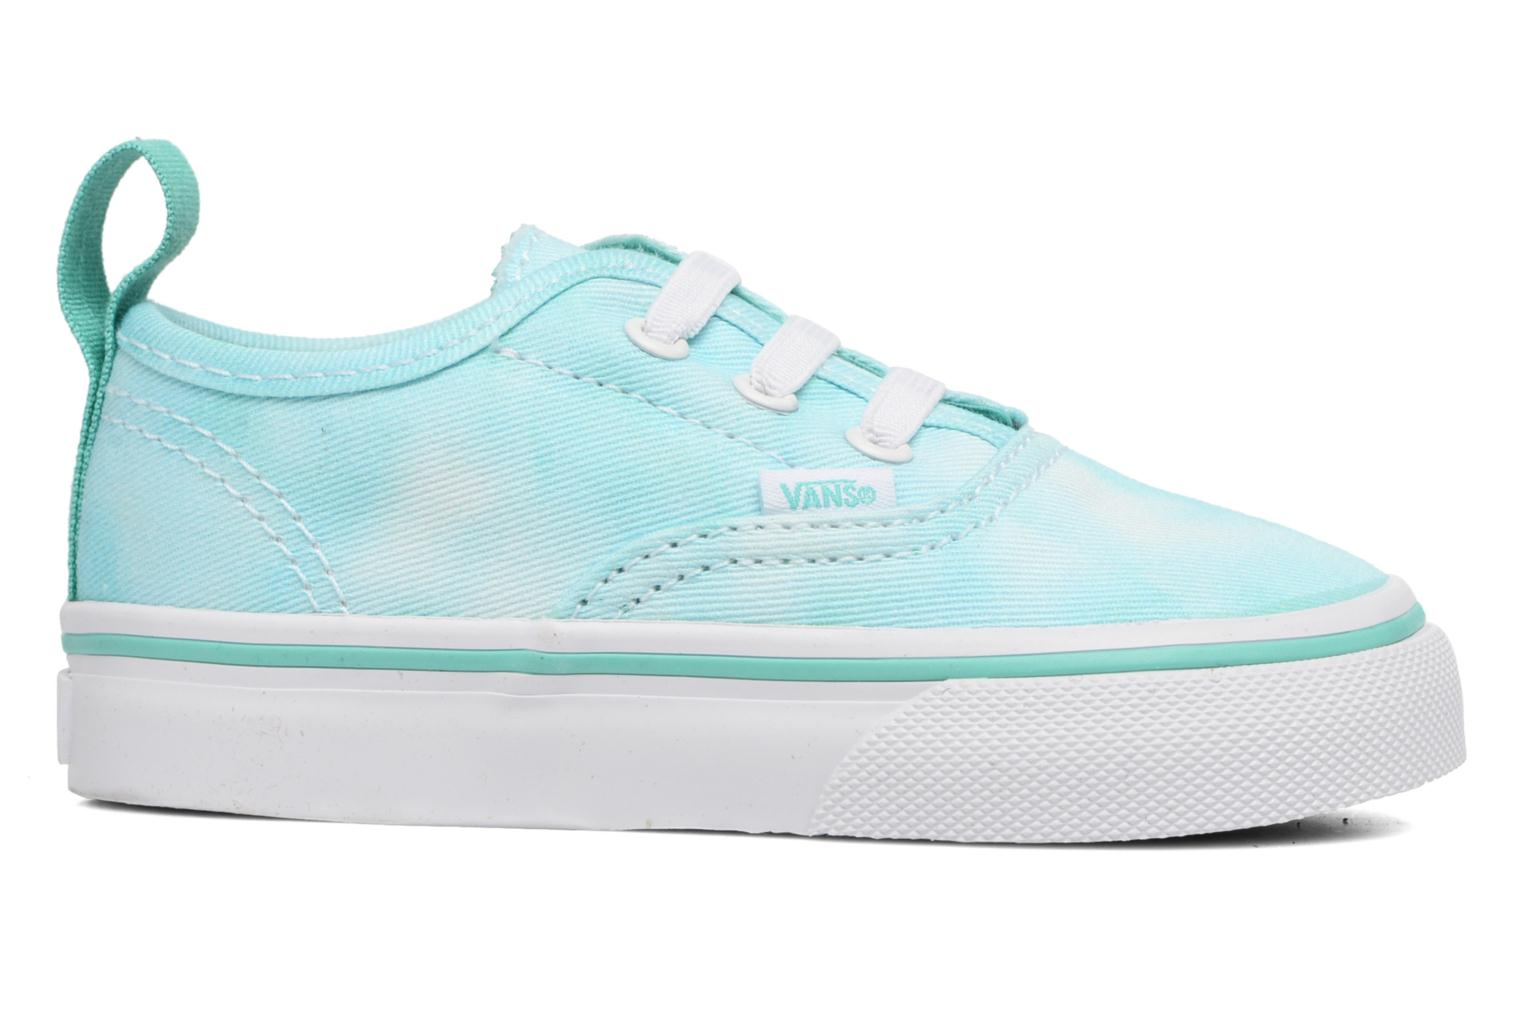 Authentic V Lace BB (Tie Dye) turquoise